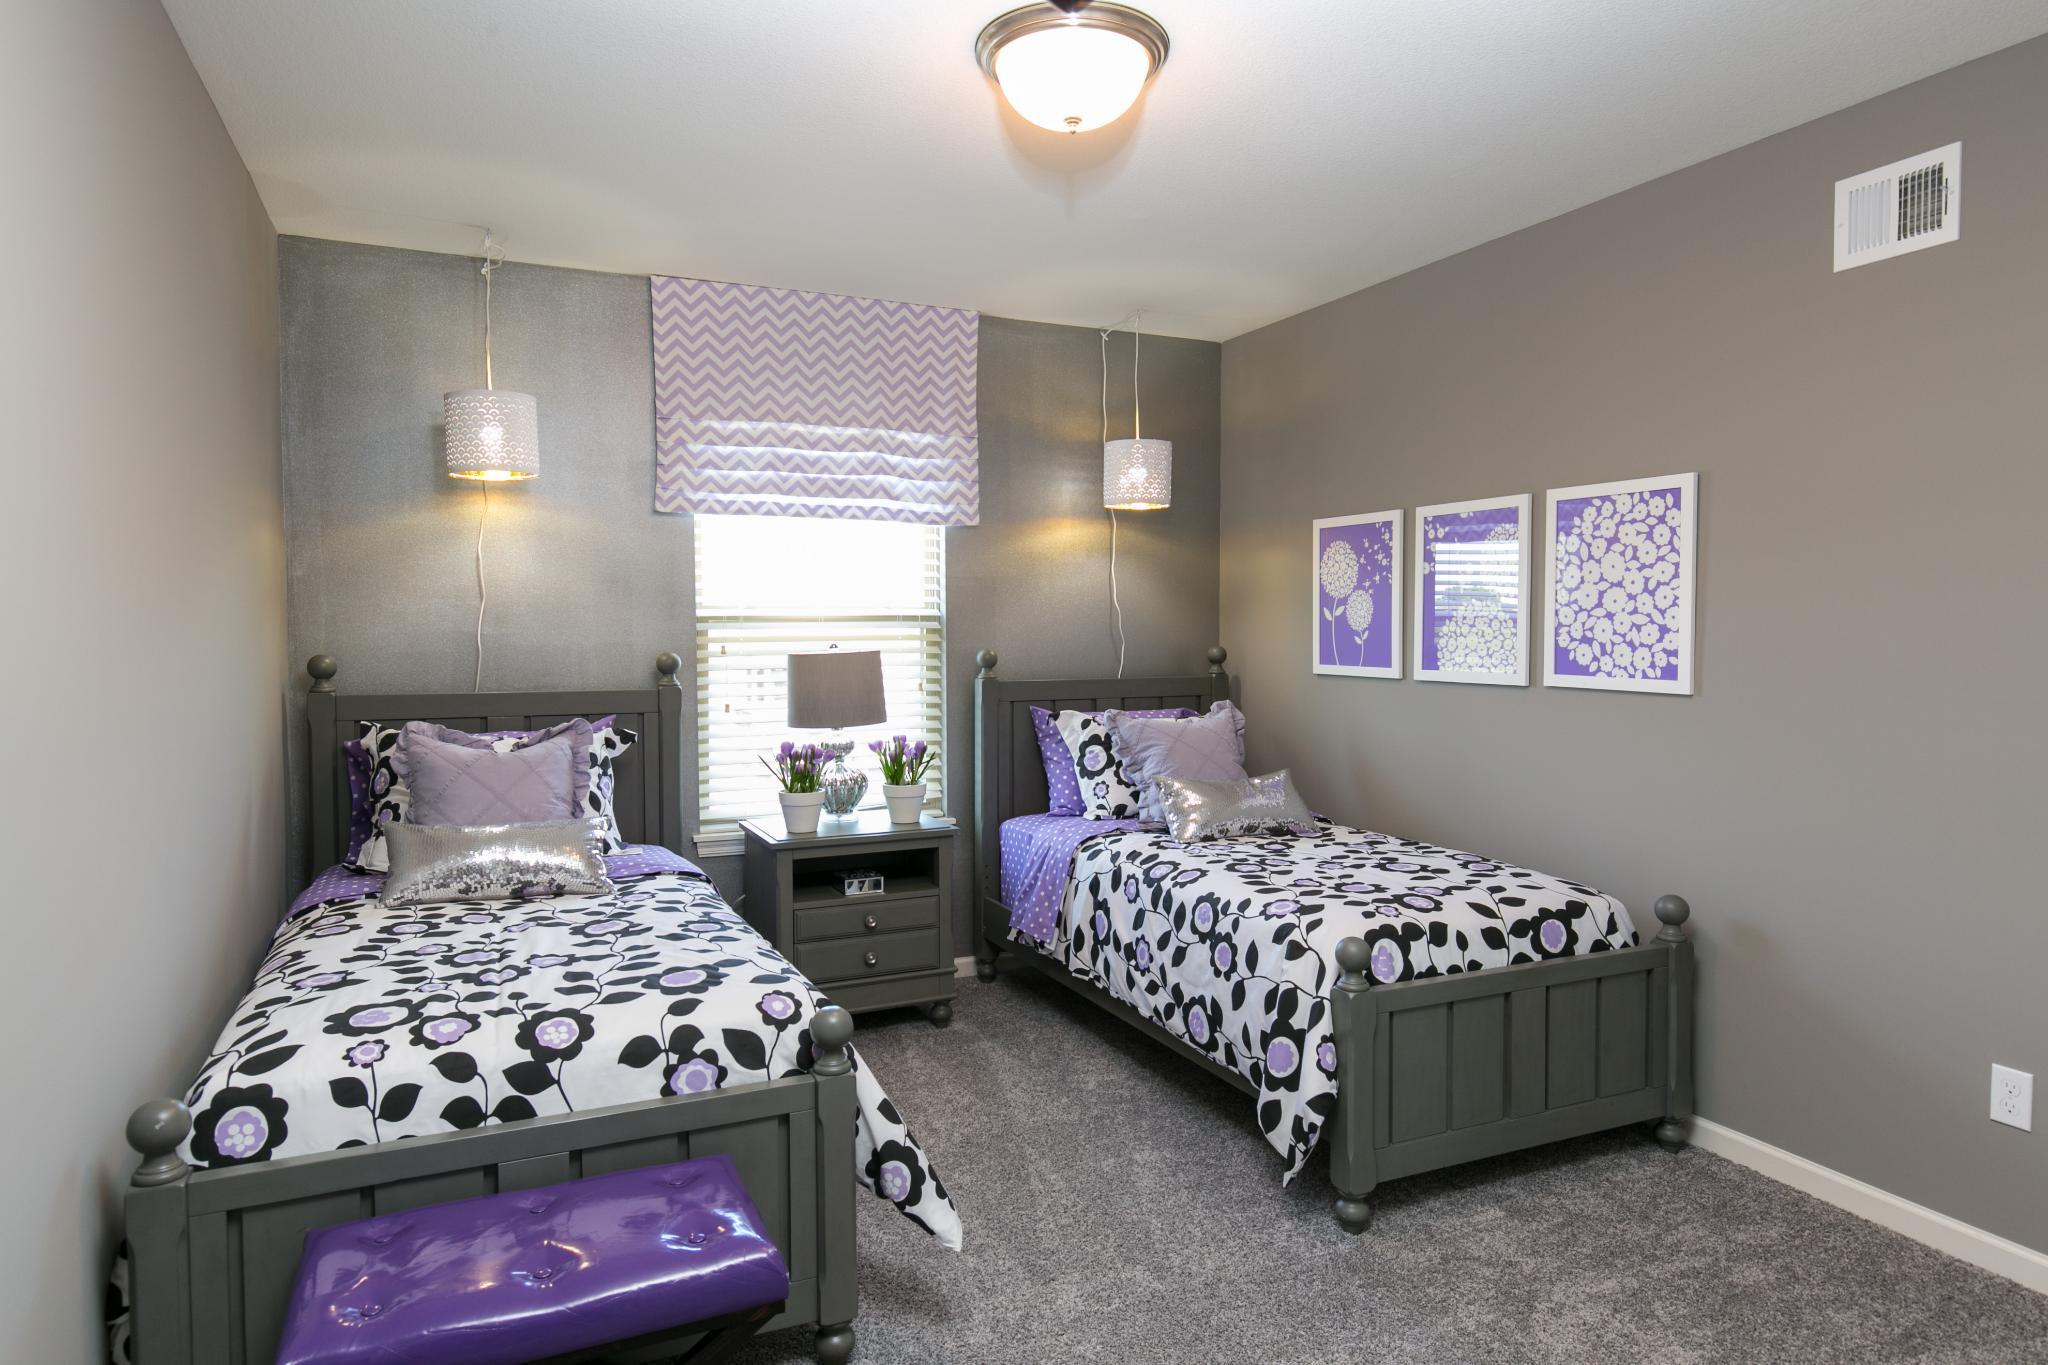 Bedroom featured in the Preston Ridge By Summit Homes in Kansas City, MO